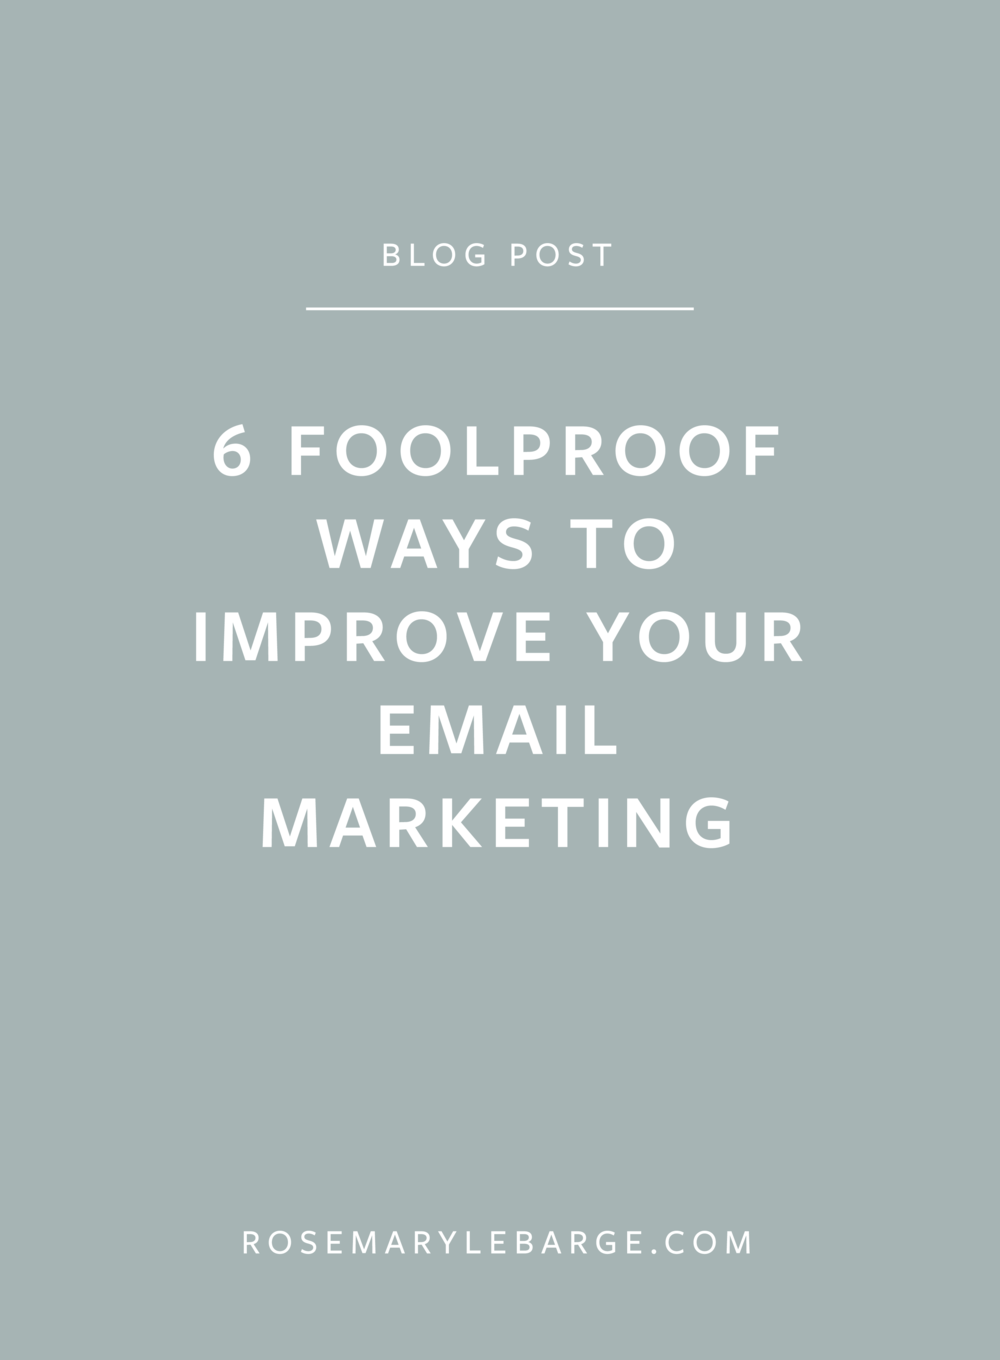 6 FoolProof Ways To Improve Your Email Marketing